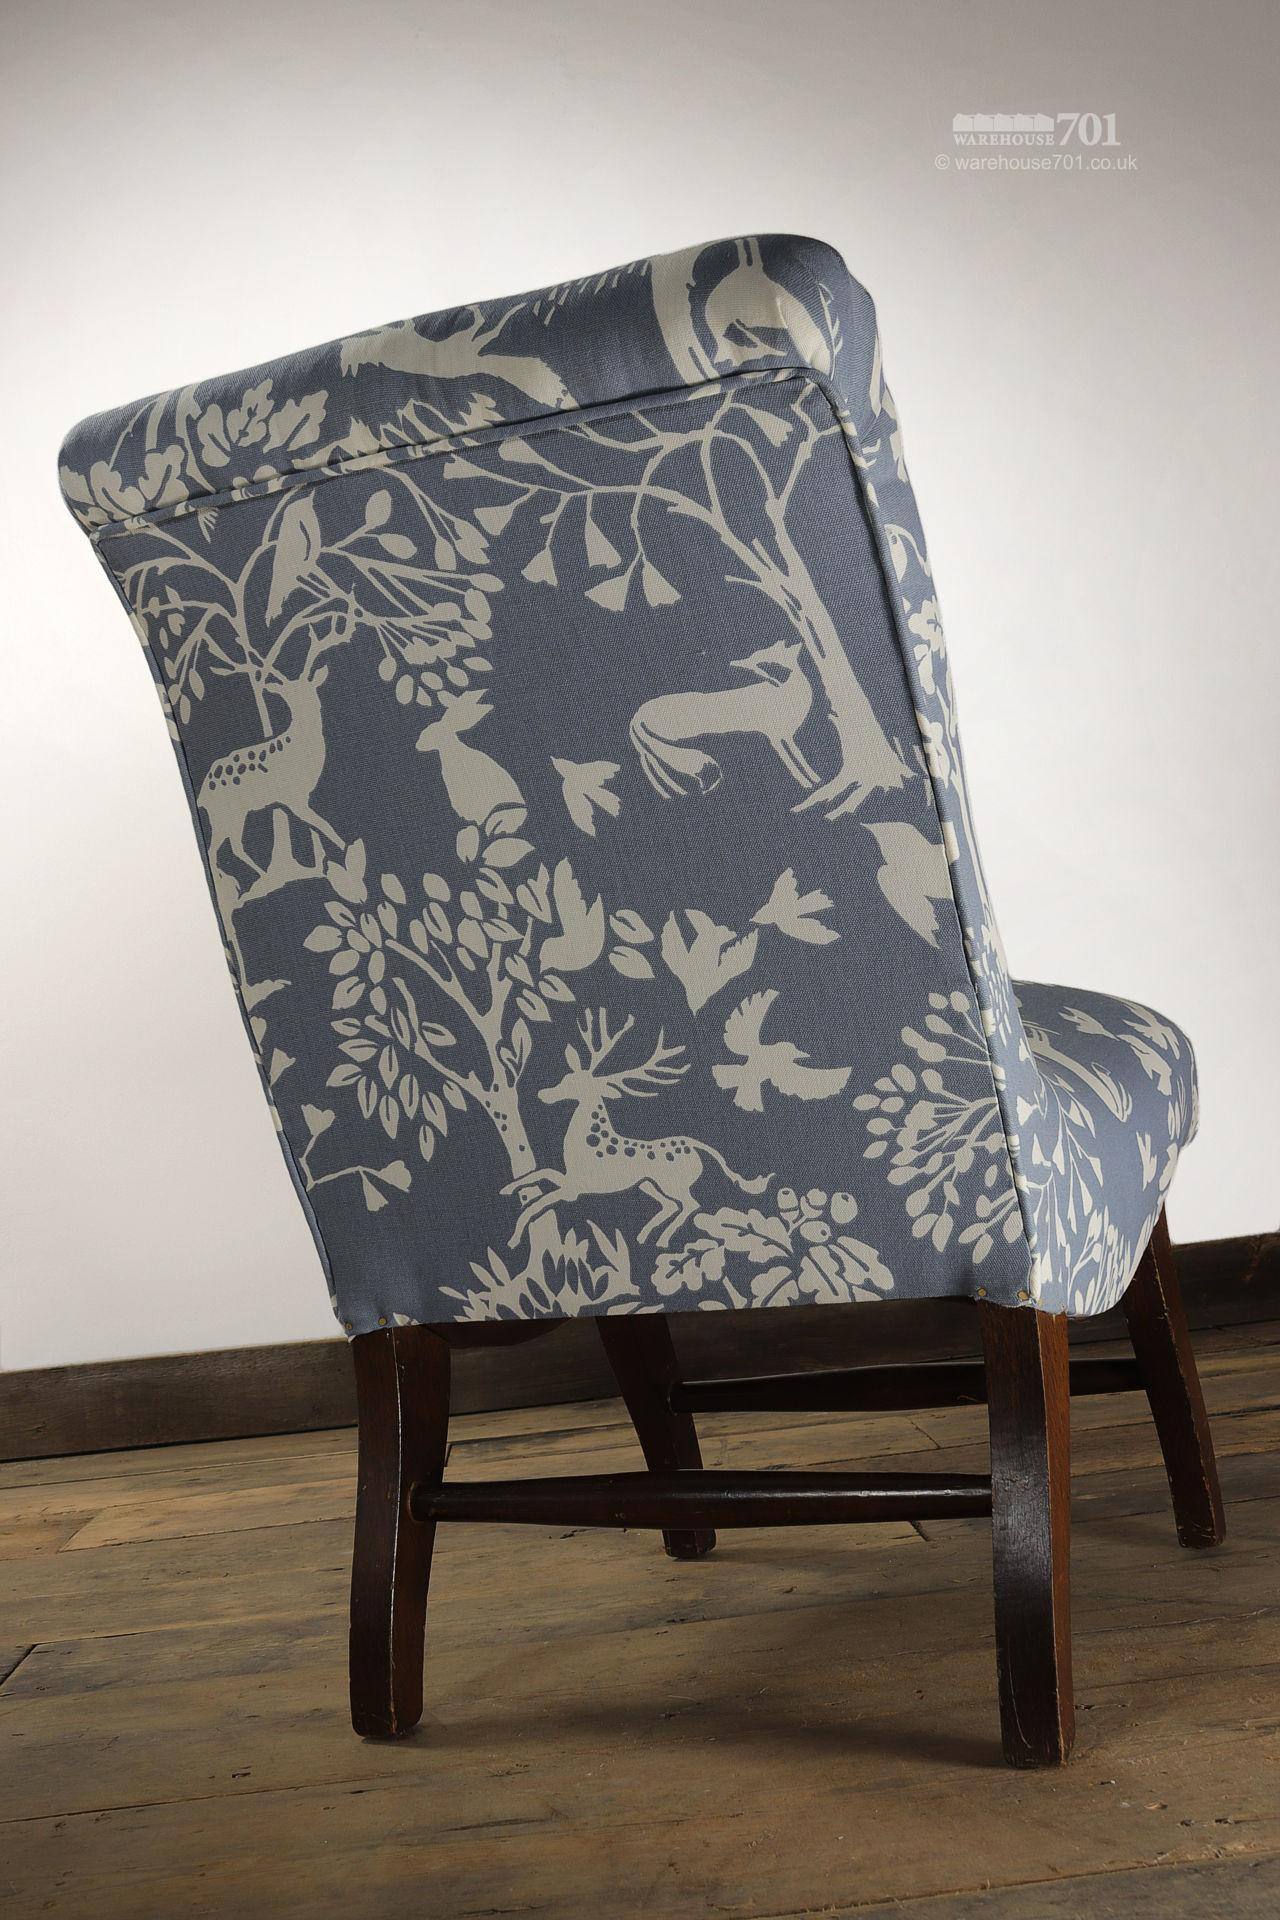 Reclaimed Small Child's Nursery Chair #3